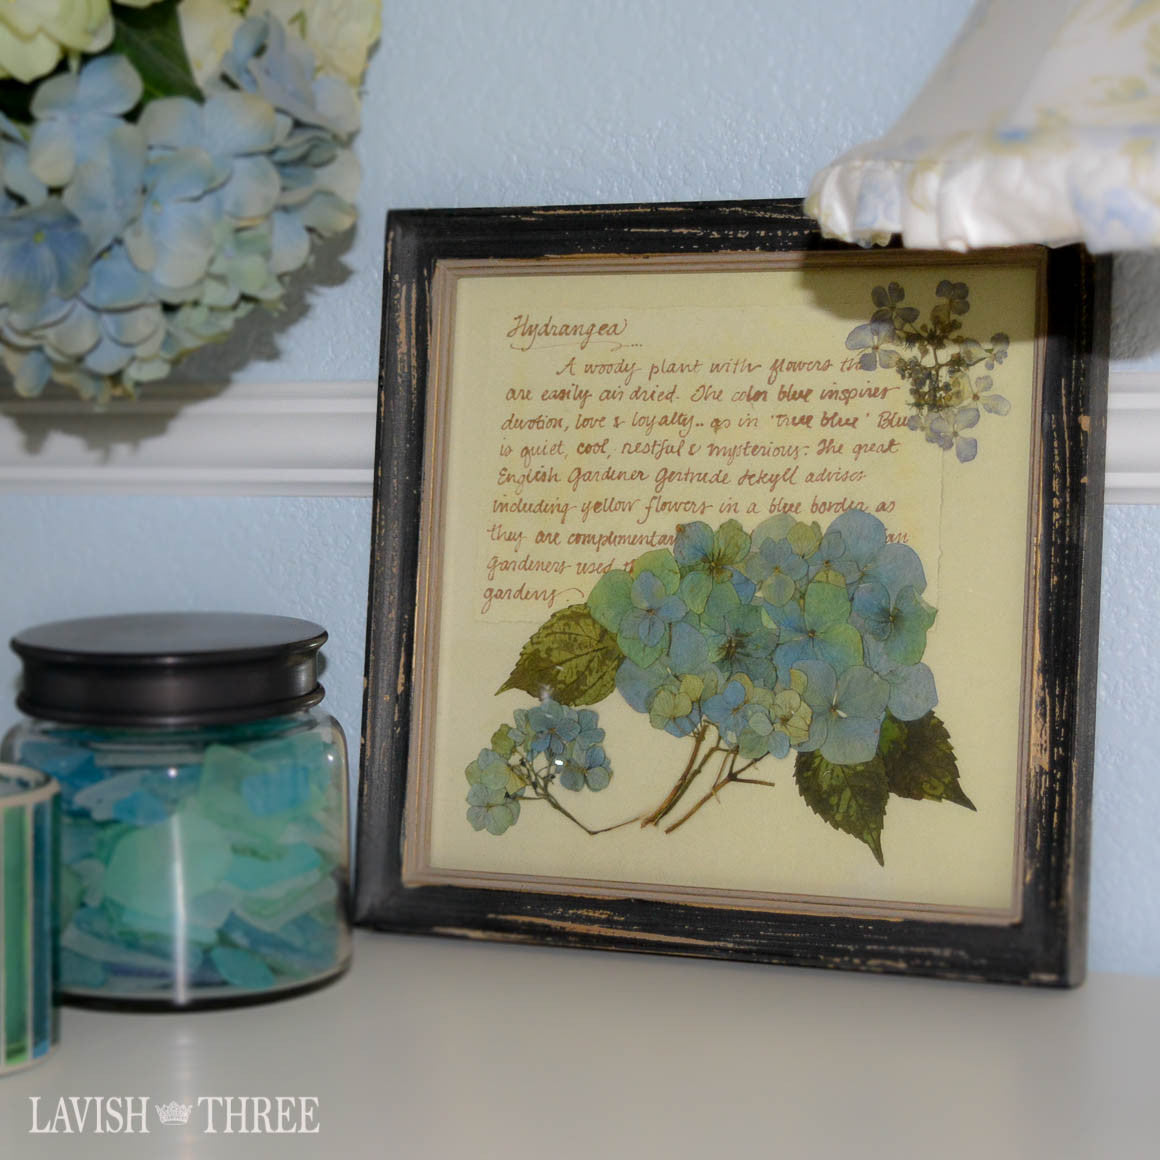 Blue hydrangea framed botanical floral print cottage chic vintage decor Lavish three 3